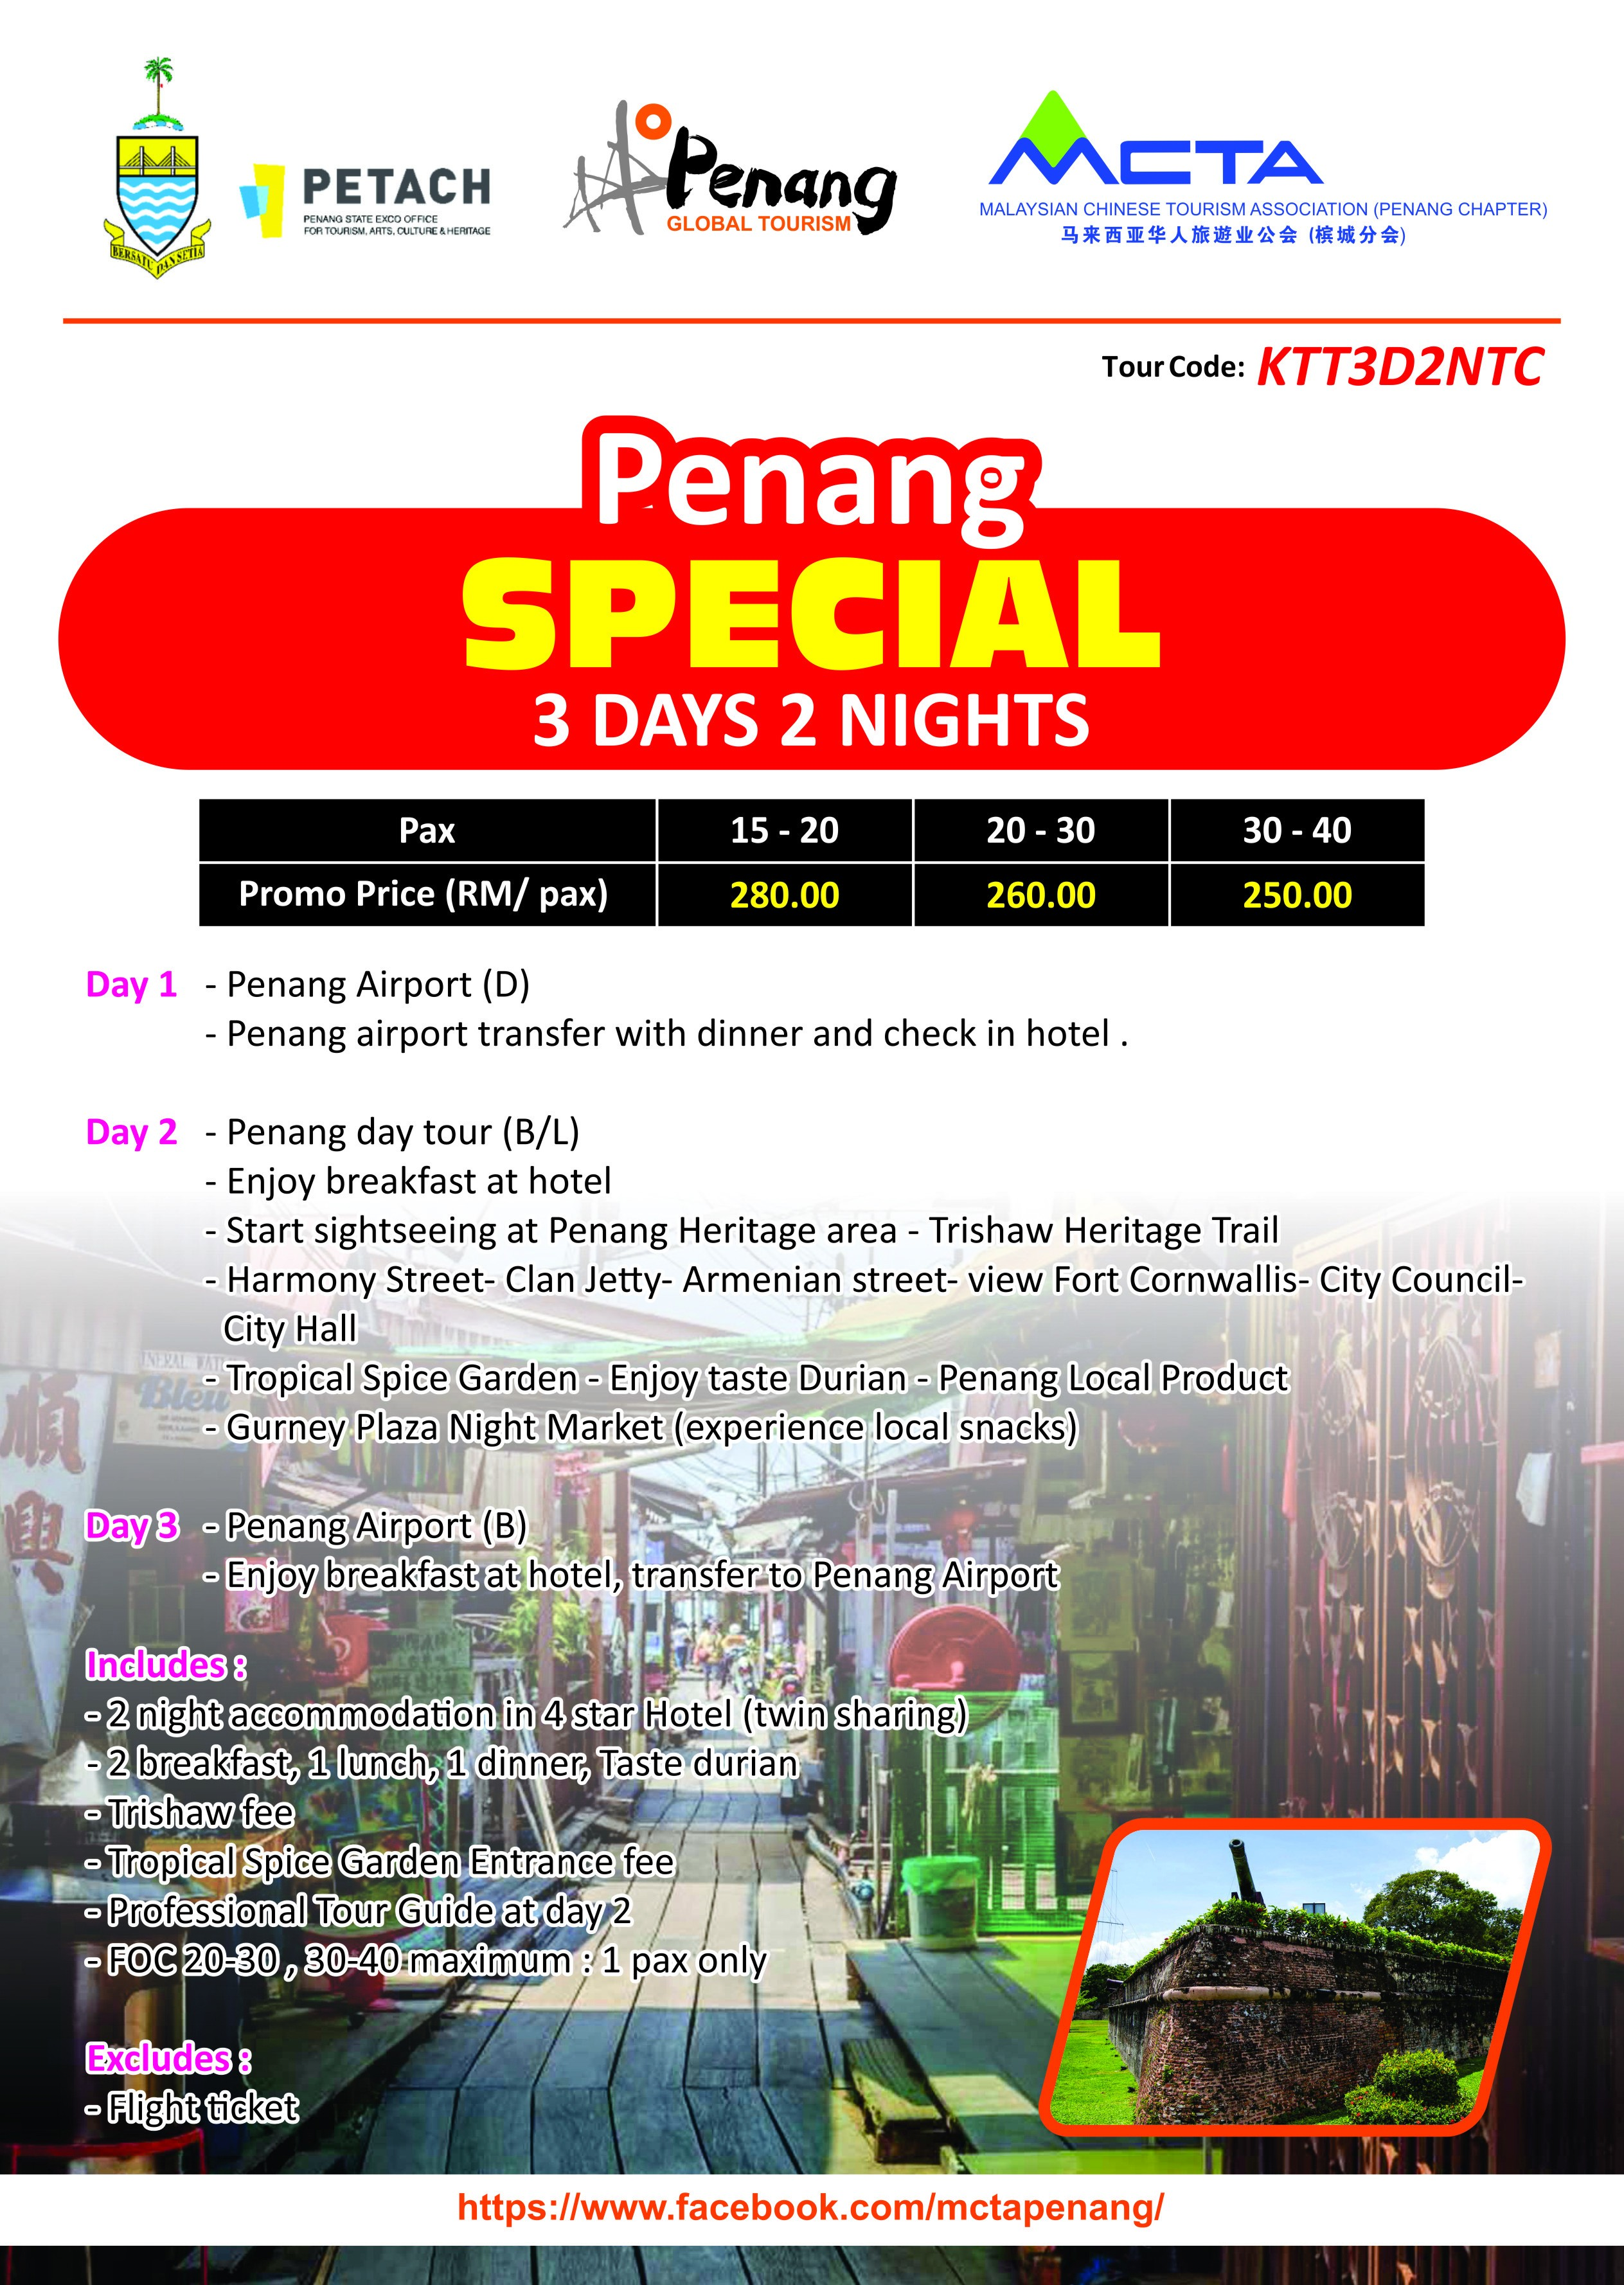 Penang Special - 3 Days 2 Nights